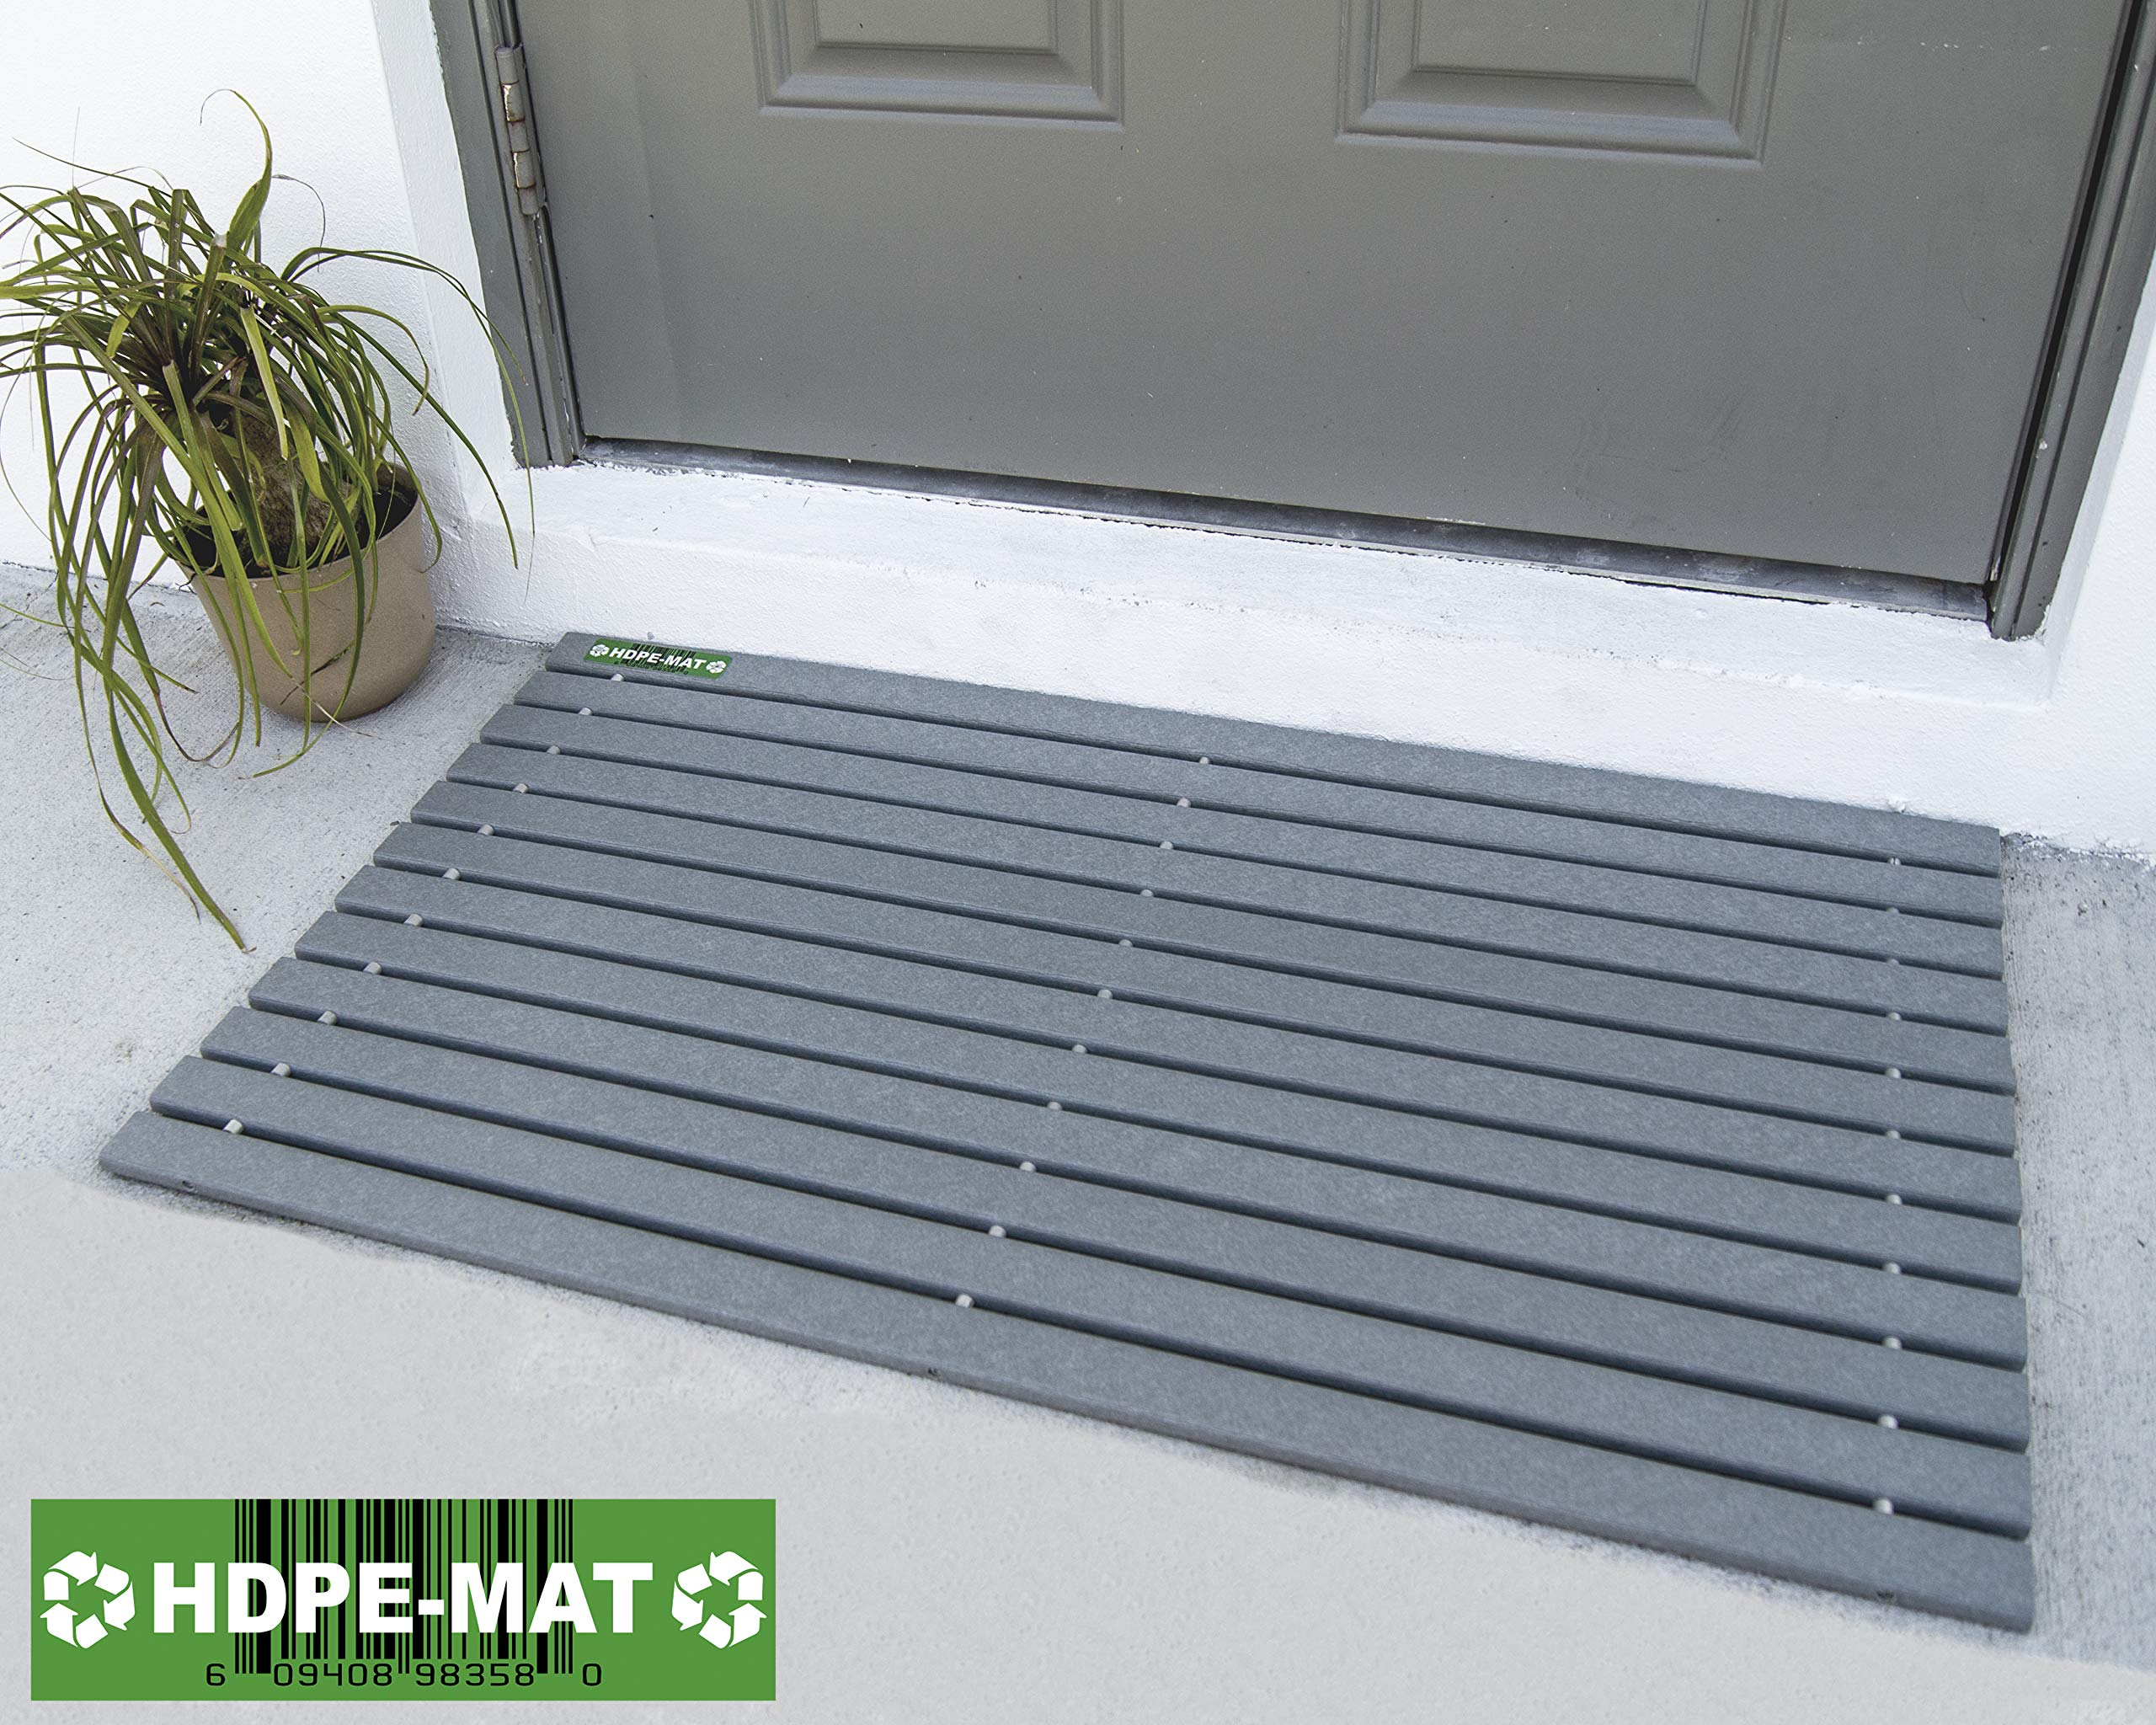 HDPE-MAT UV Resistant Heavy Duty Waterproof Front Door Mat | Stylish Handcrafted Recycled Plastic Poly Lumber Slats - Eco Friendly For Outdoor Entrance Patio Garage Entry Driftwood Gray